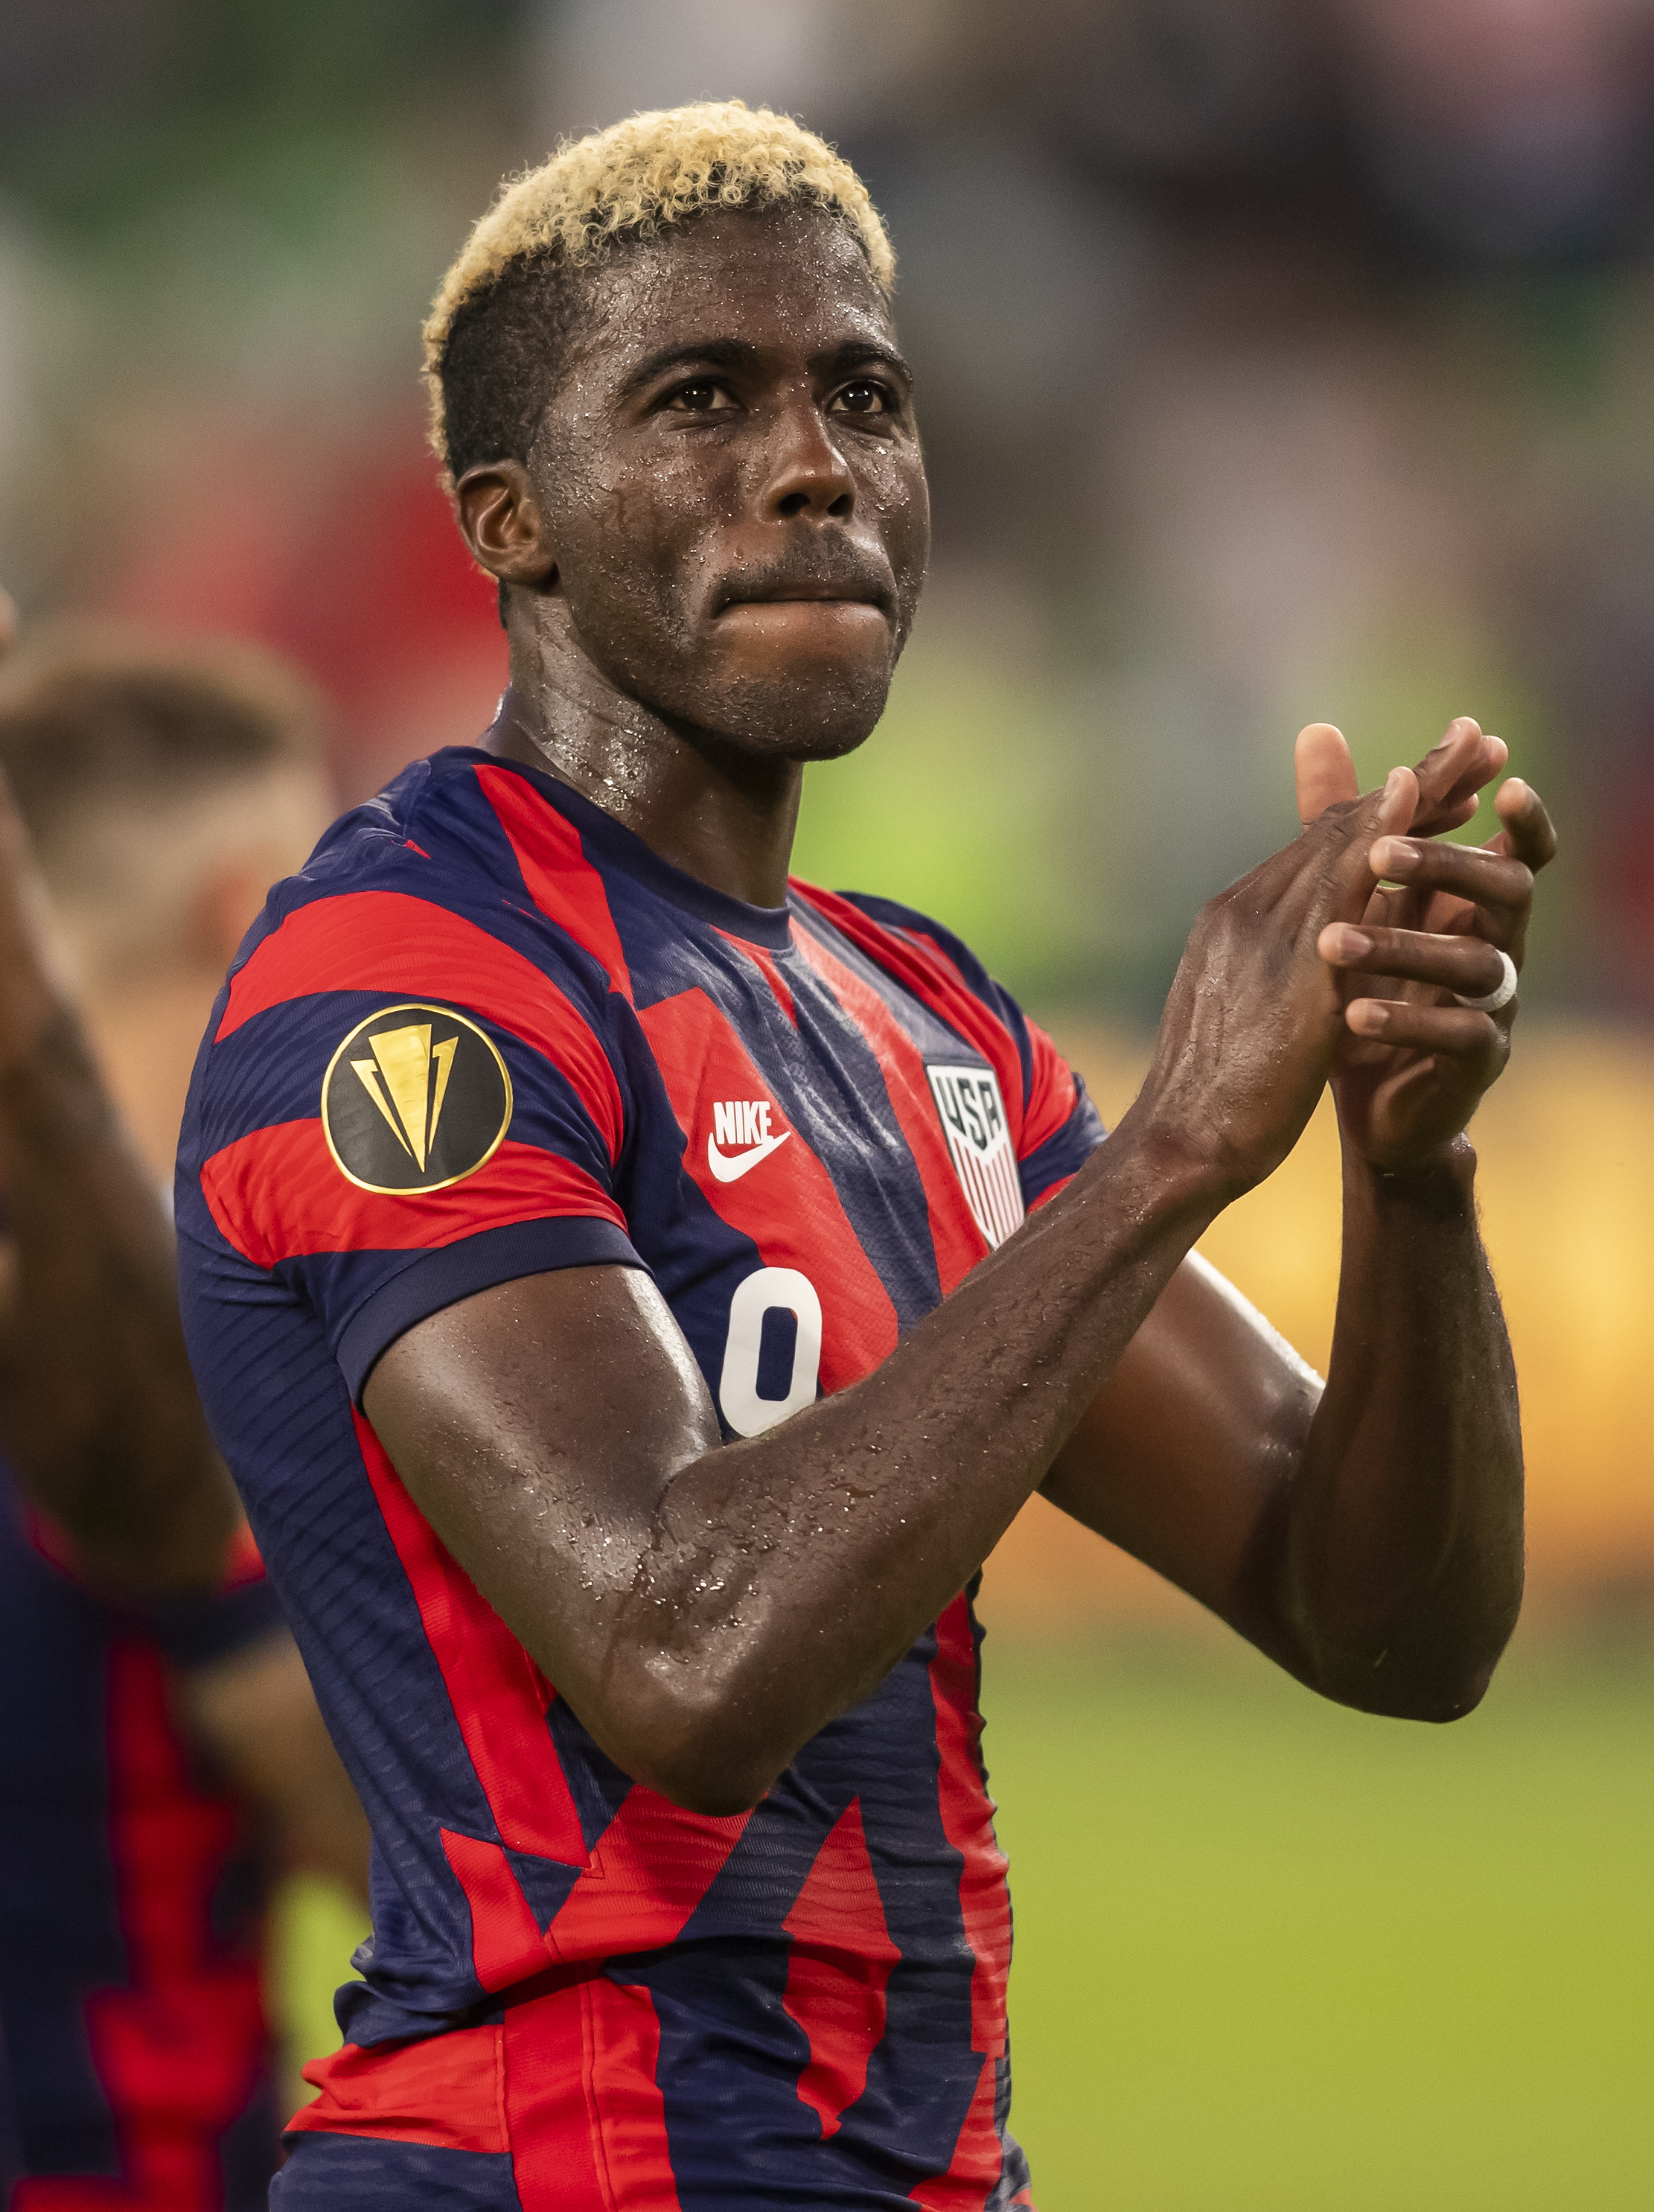 SOCCER: JUL 29 Concacaf Gold Cup Semifinal - United States v Qatar